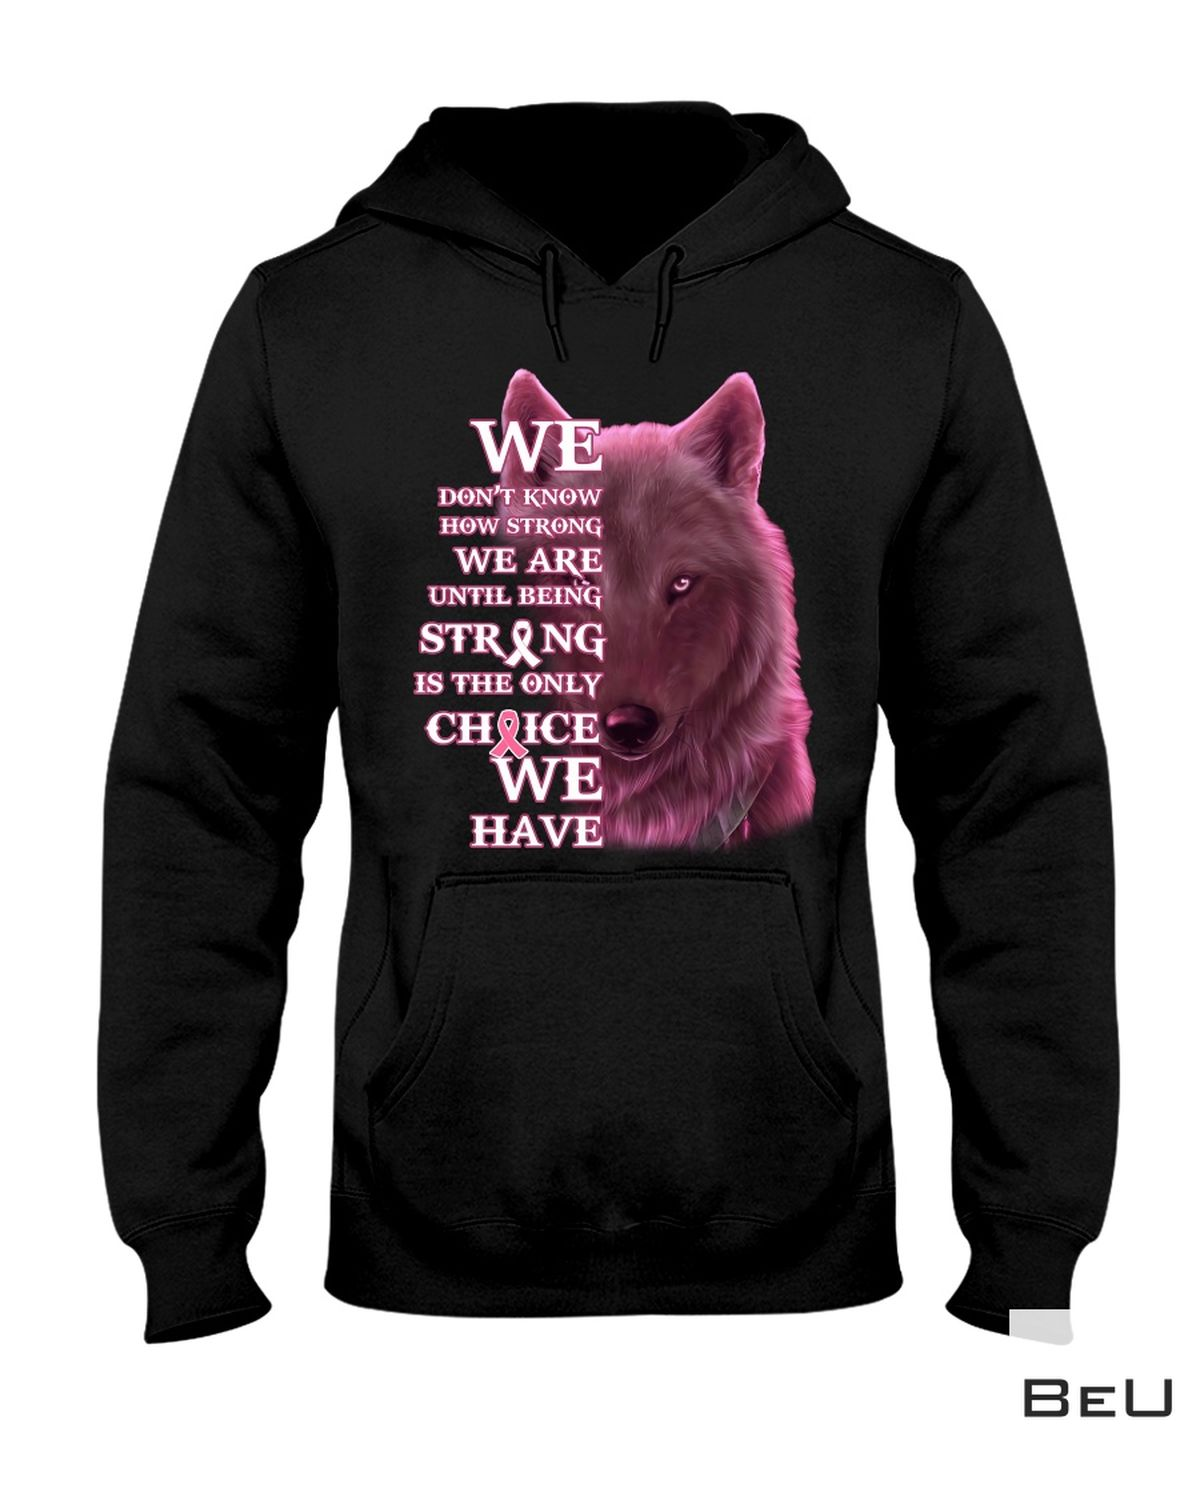 Present Wolf We Don't Know How Strong We Are Until Being Strong Is The Only Choice We Have Breast Cancer Awareness Shirt